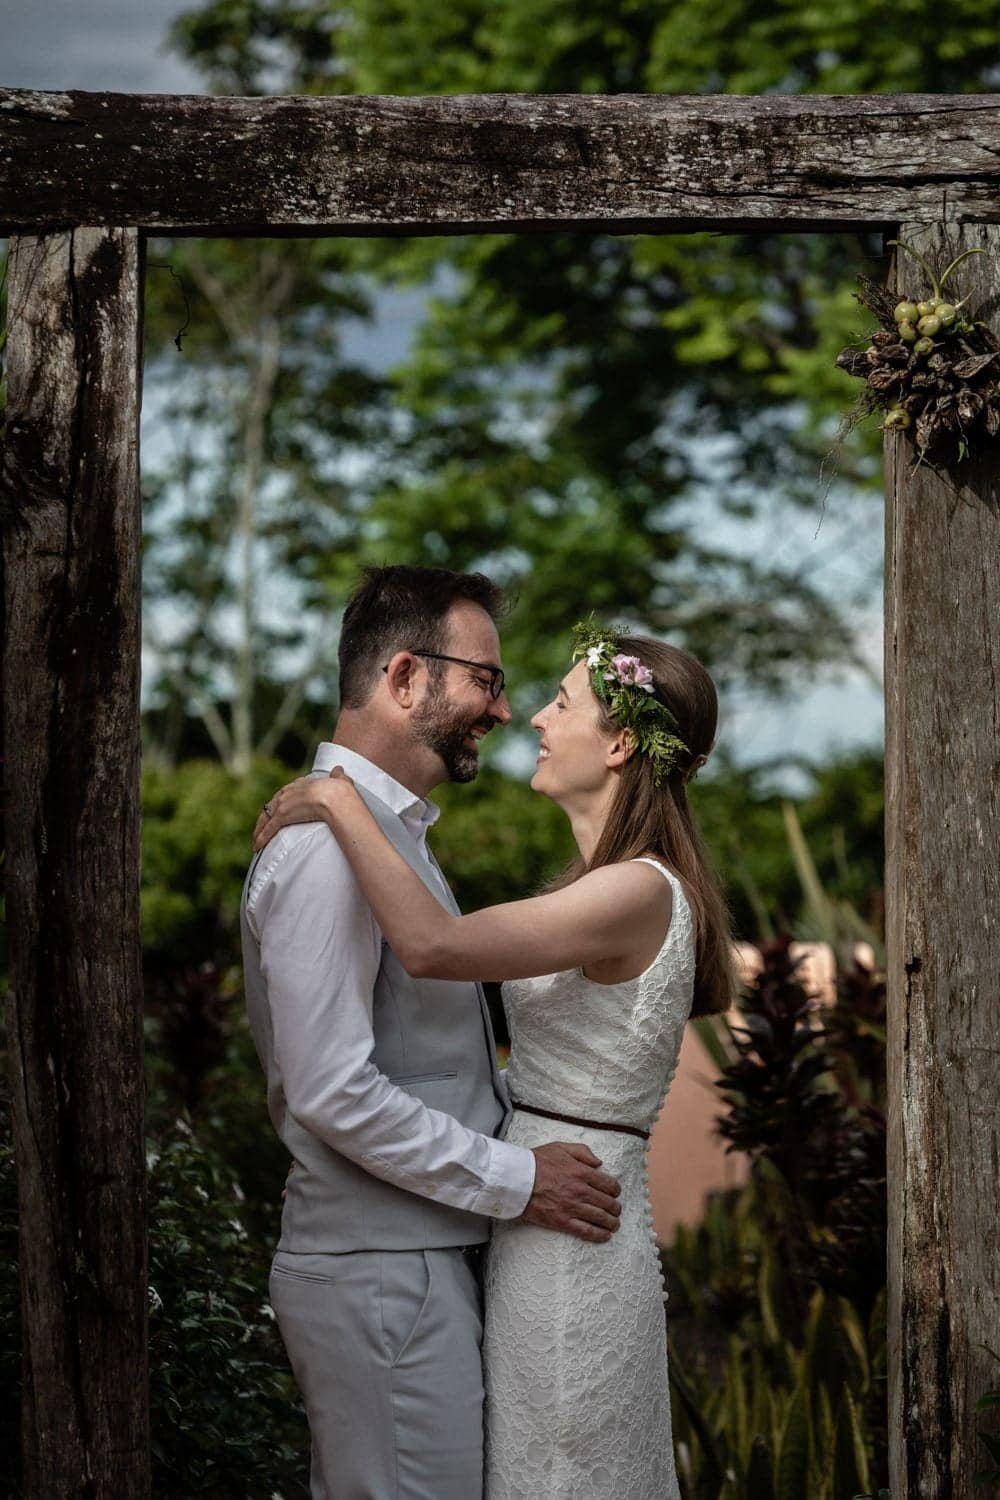 Bride and groom pose for wedding photo under rustic wooden arch.